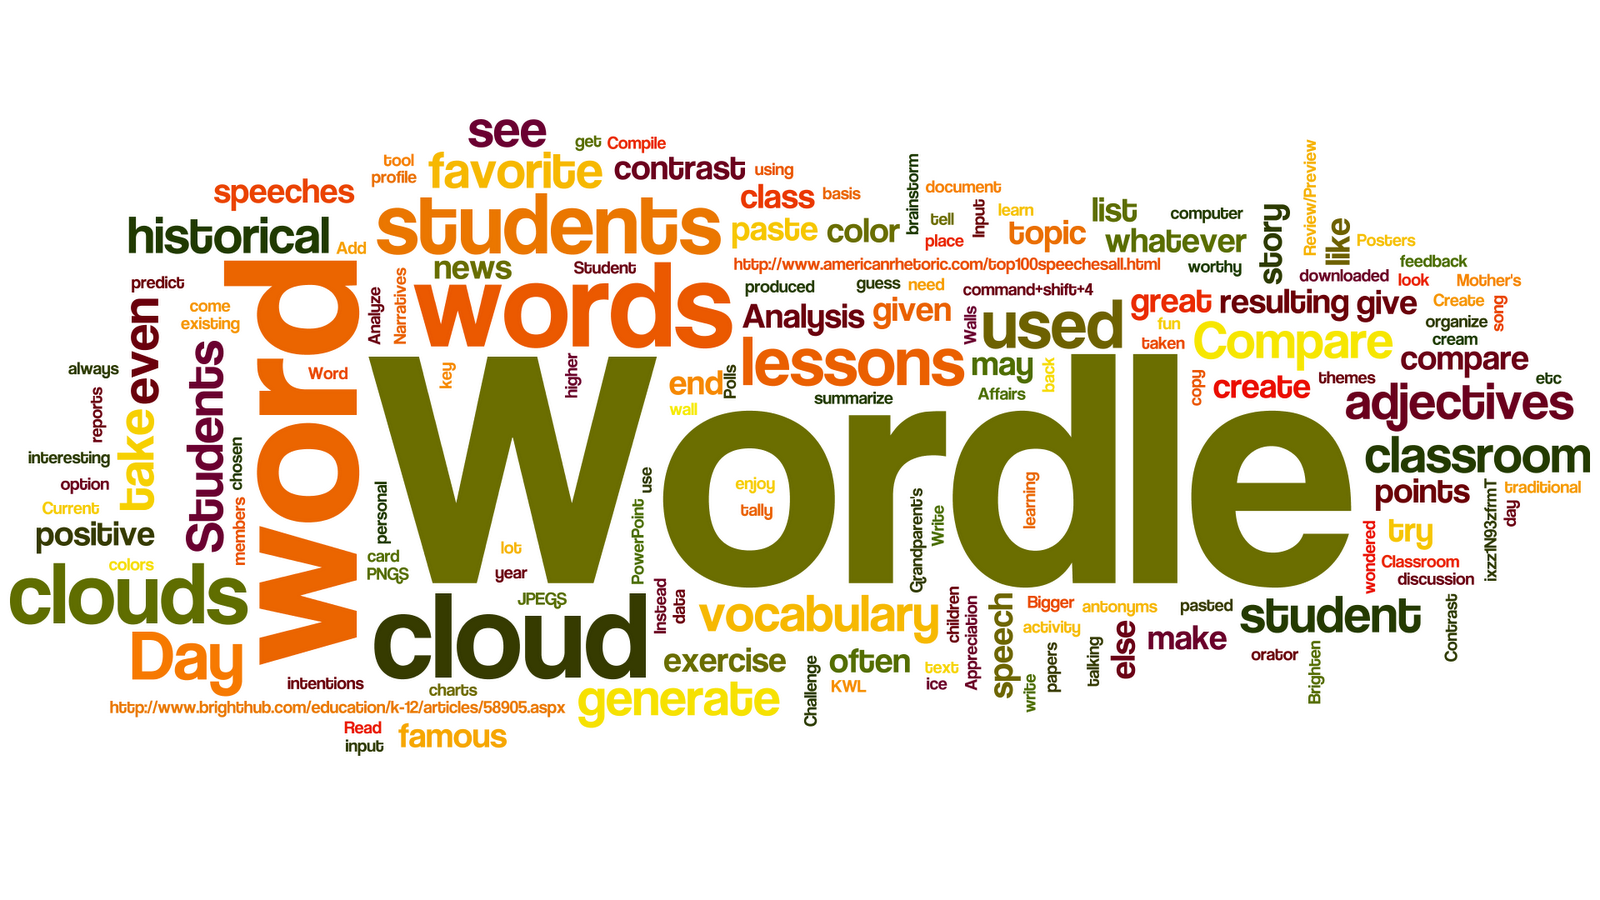 A Free Word Cloud Generators Java Generating Word Clouds From Text That Used In The Classroom An Word Cloud Generator Word Cloud Generator Free Word Cloud